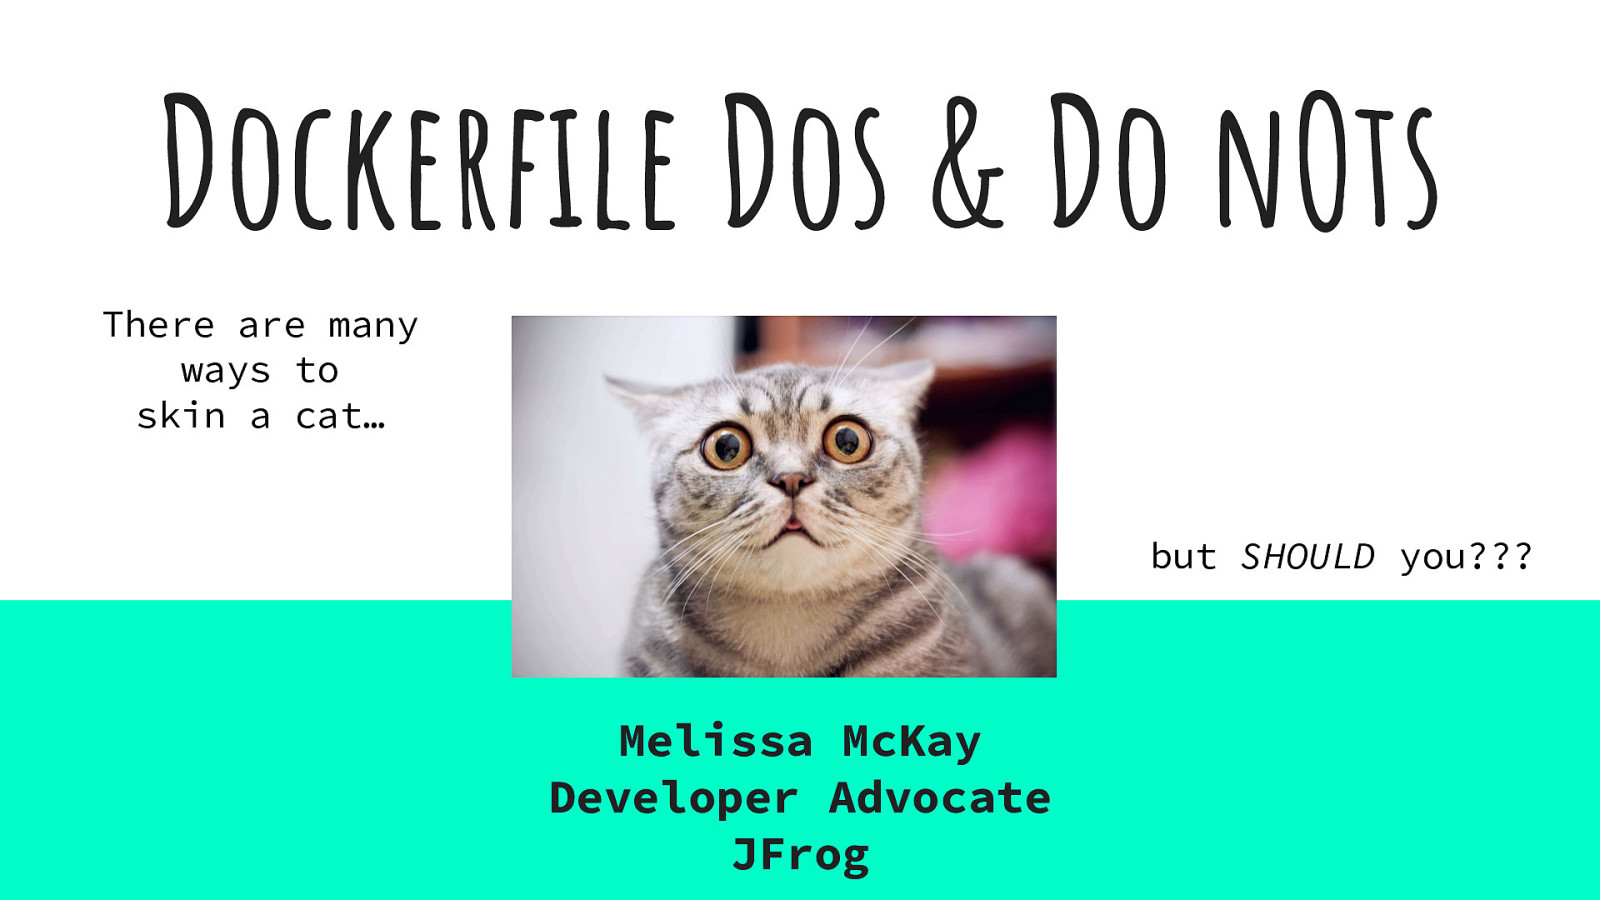 Dockerfile Dos and Do Nots by Melissa McKay